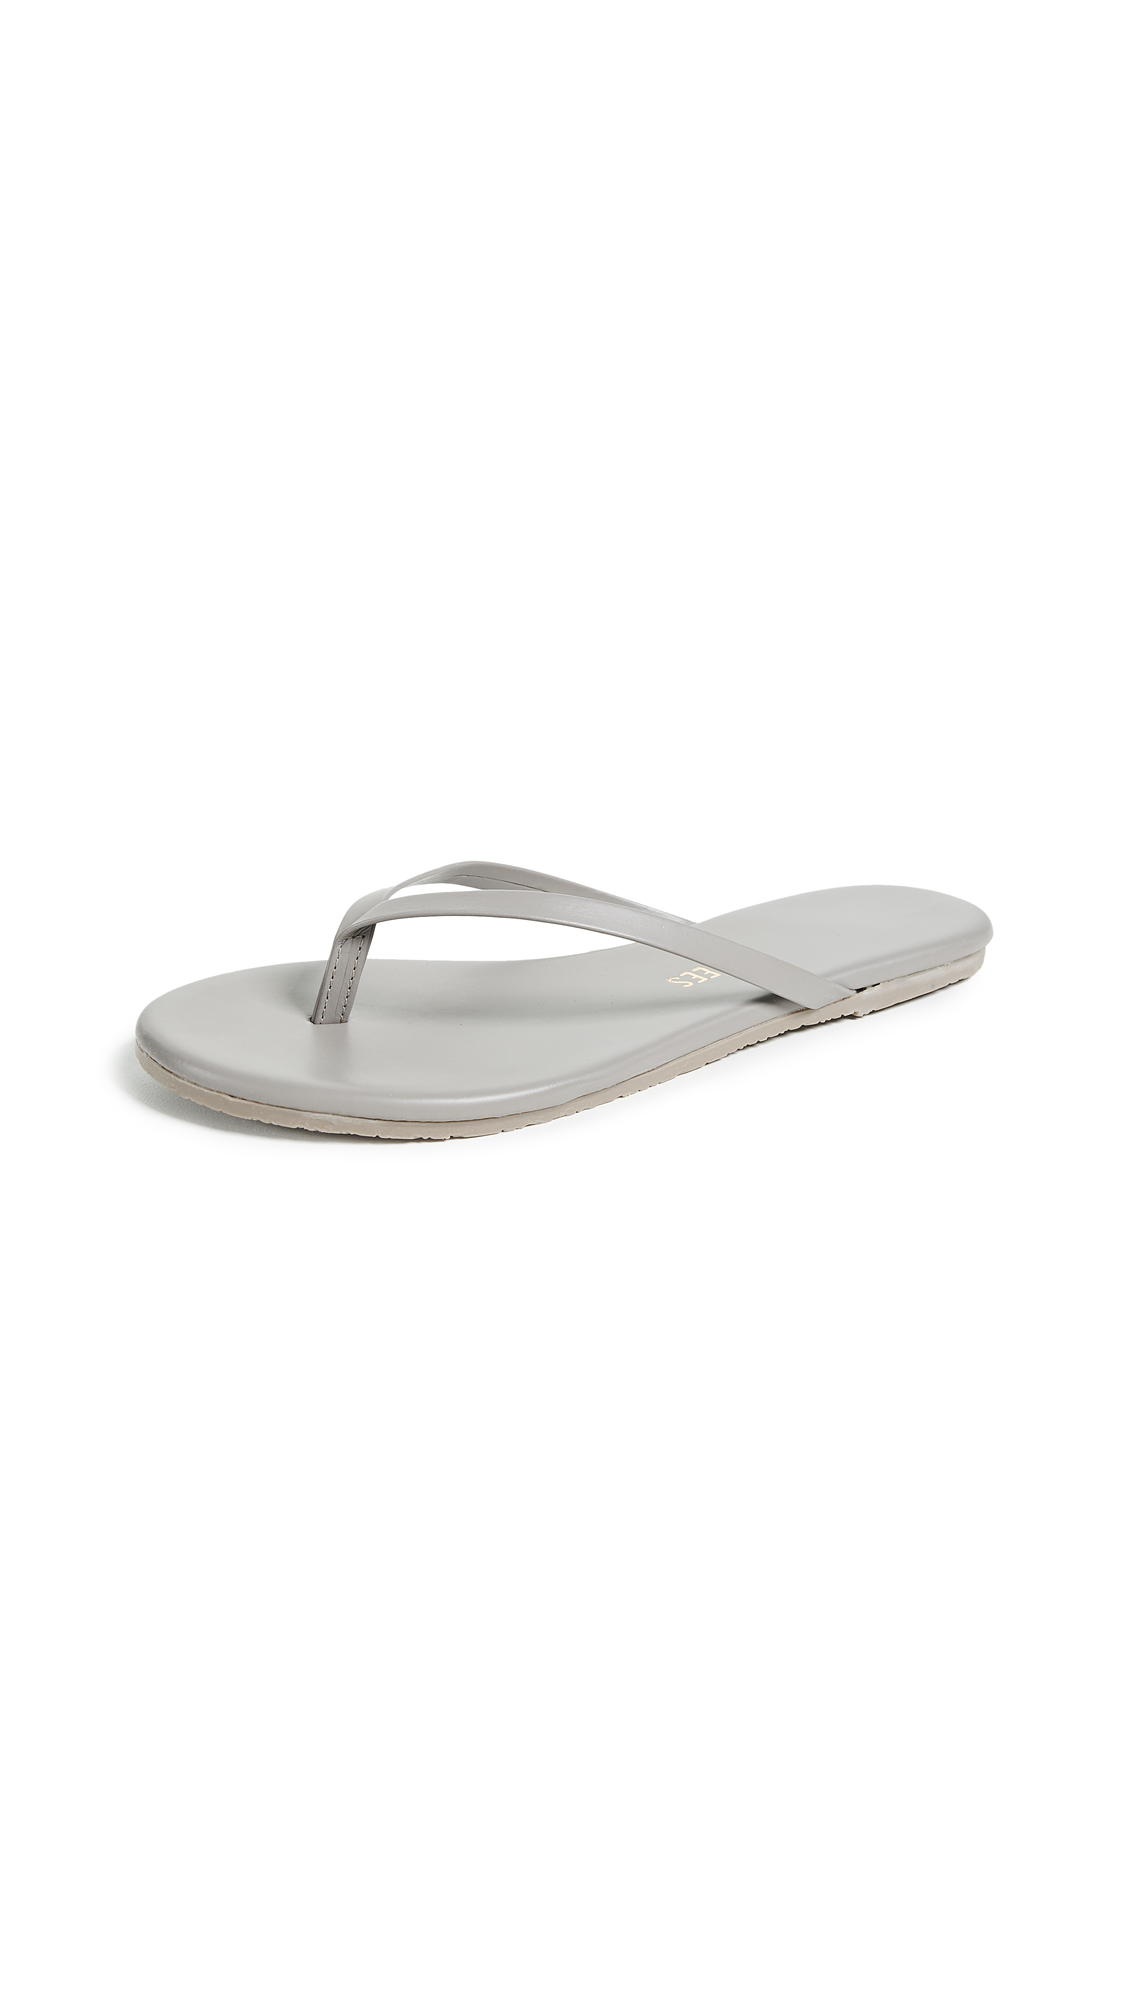 TKEES Solids Flip Flops - No. 9